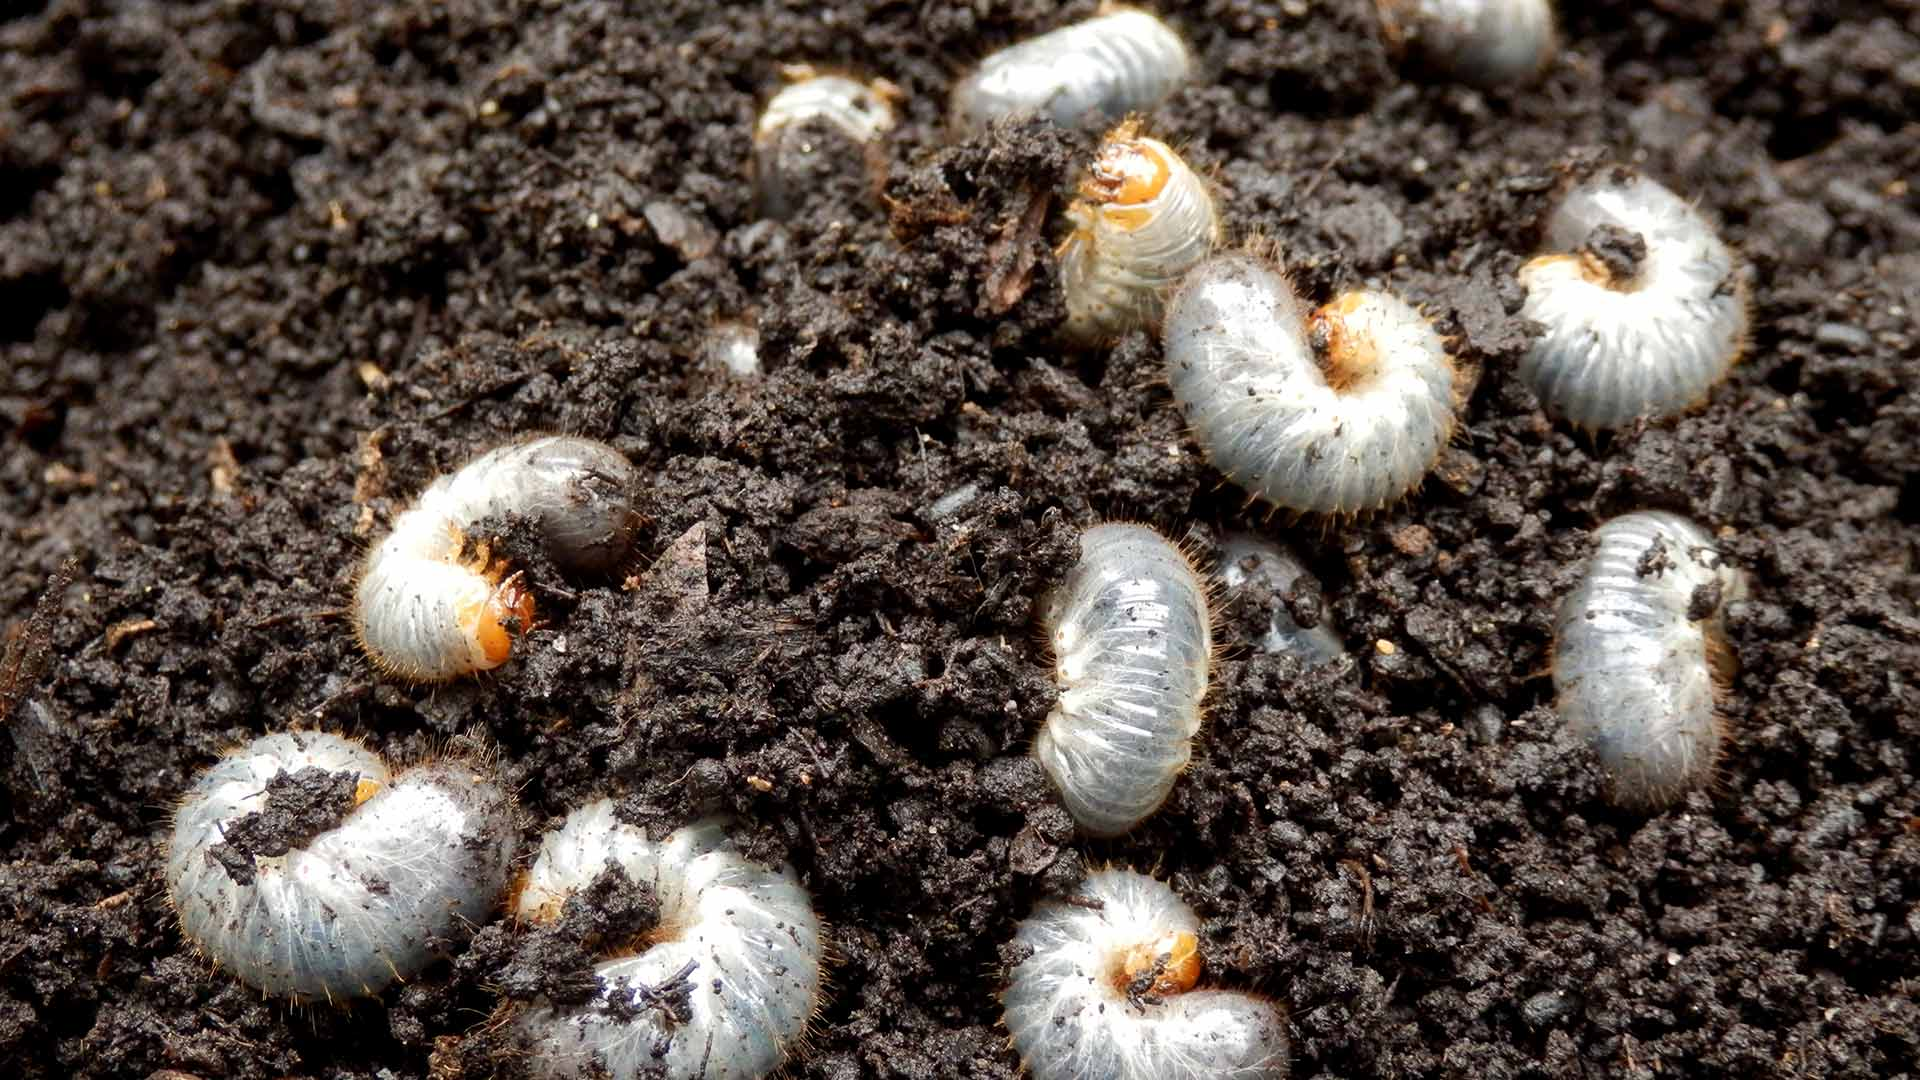 A closeup photo of grub worms in a Woodstock, GA lawn.